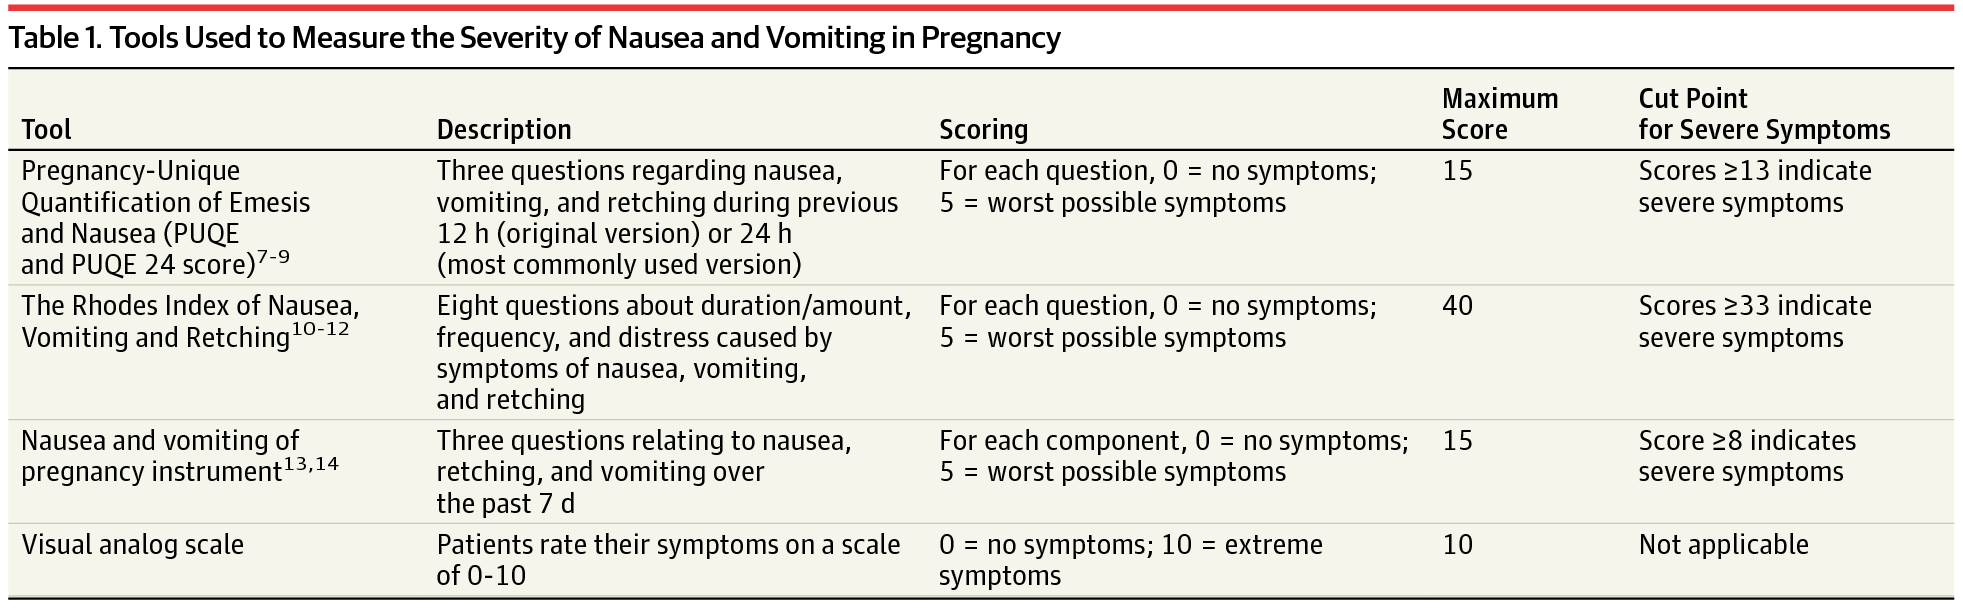 Treatments For Hyperemesis Gravidarum And Nausea And Vomiting In